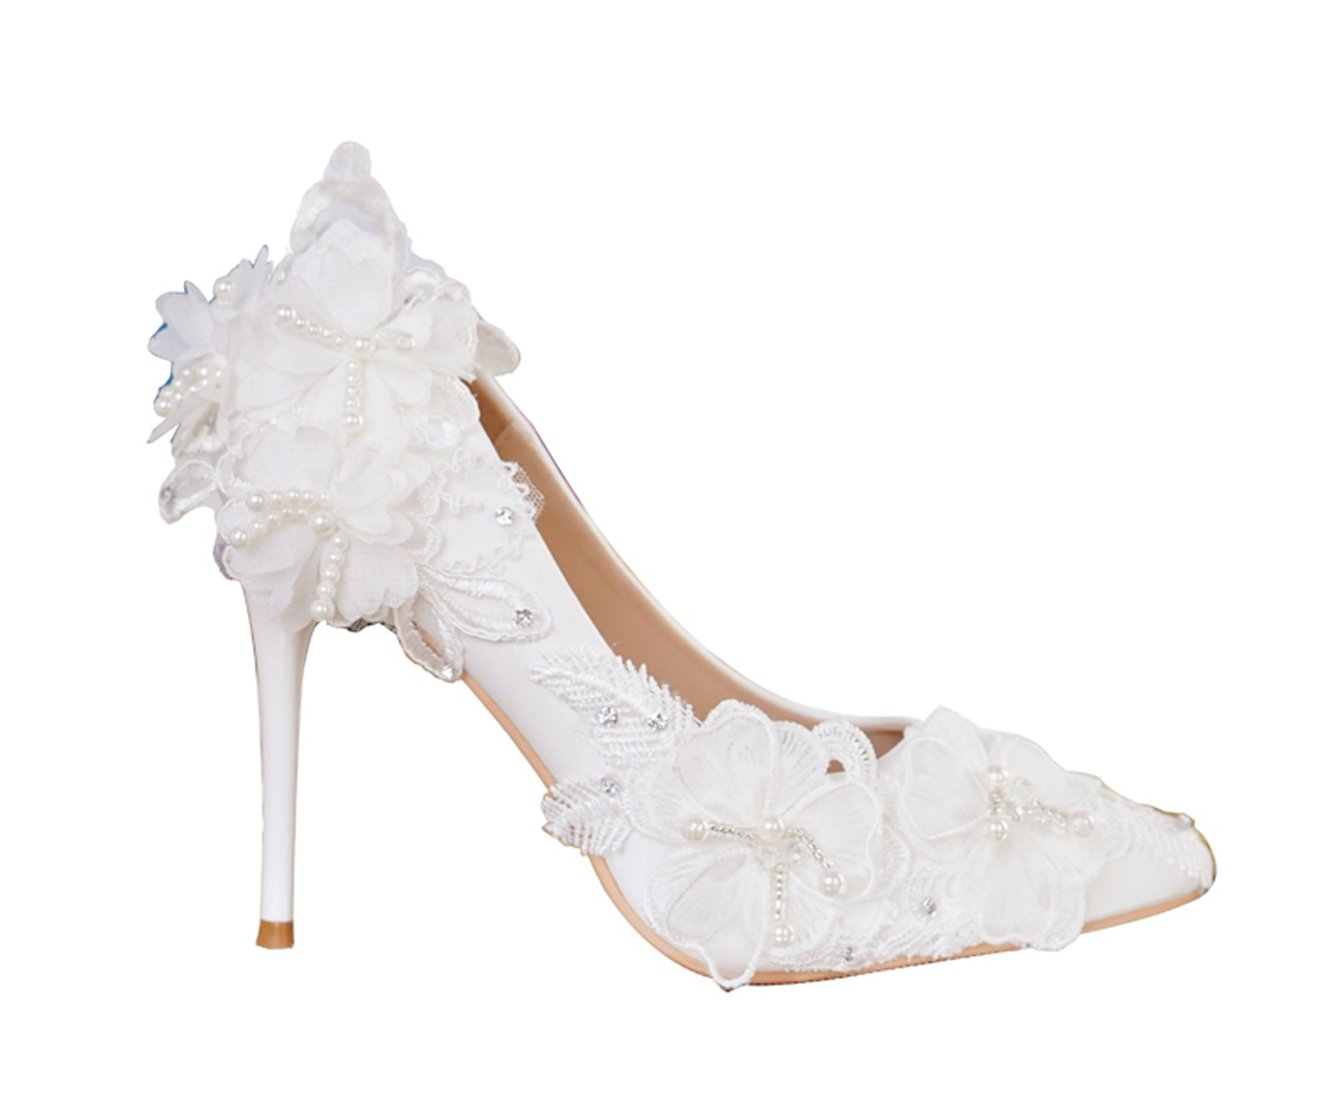 Minishion Women's Flowers Jewelry Stiletto White Satin Bridal Wedding Formal Party Shoes US 5.5